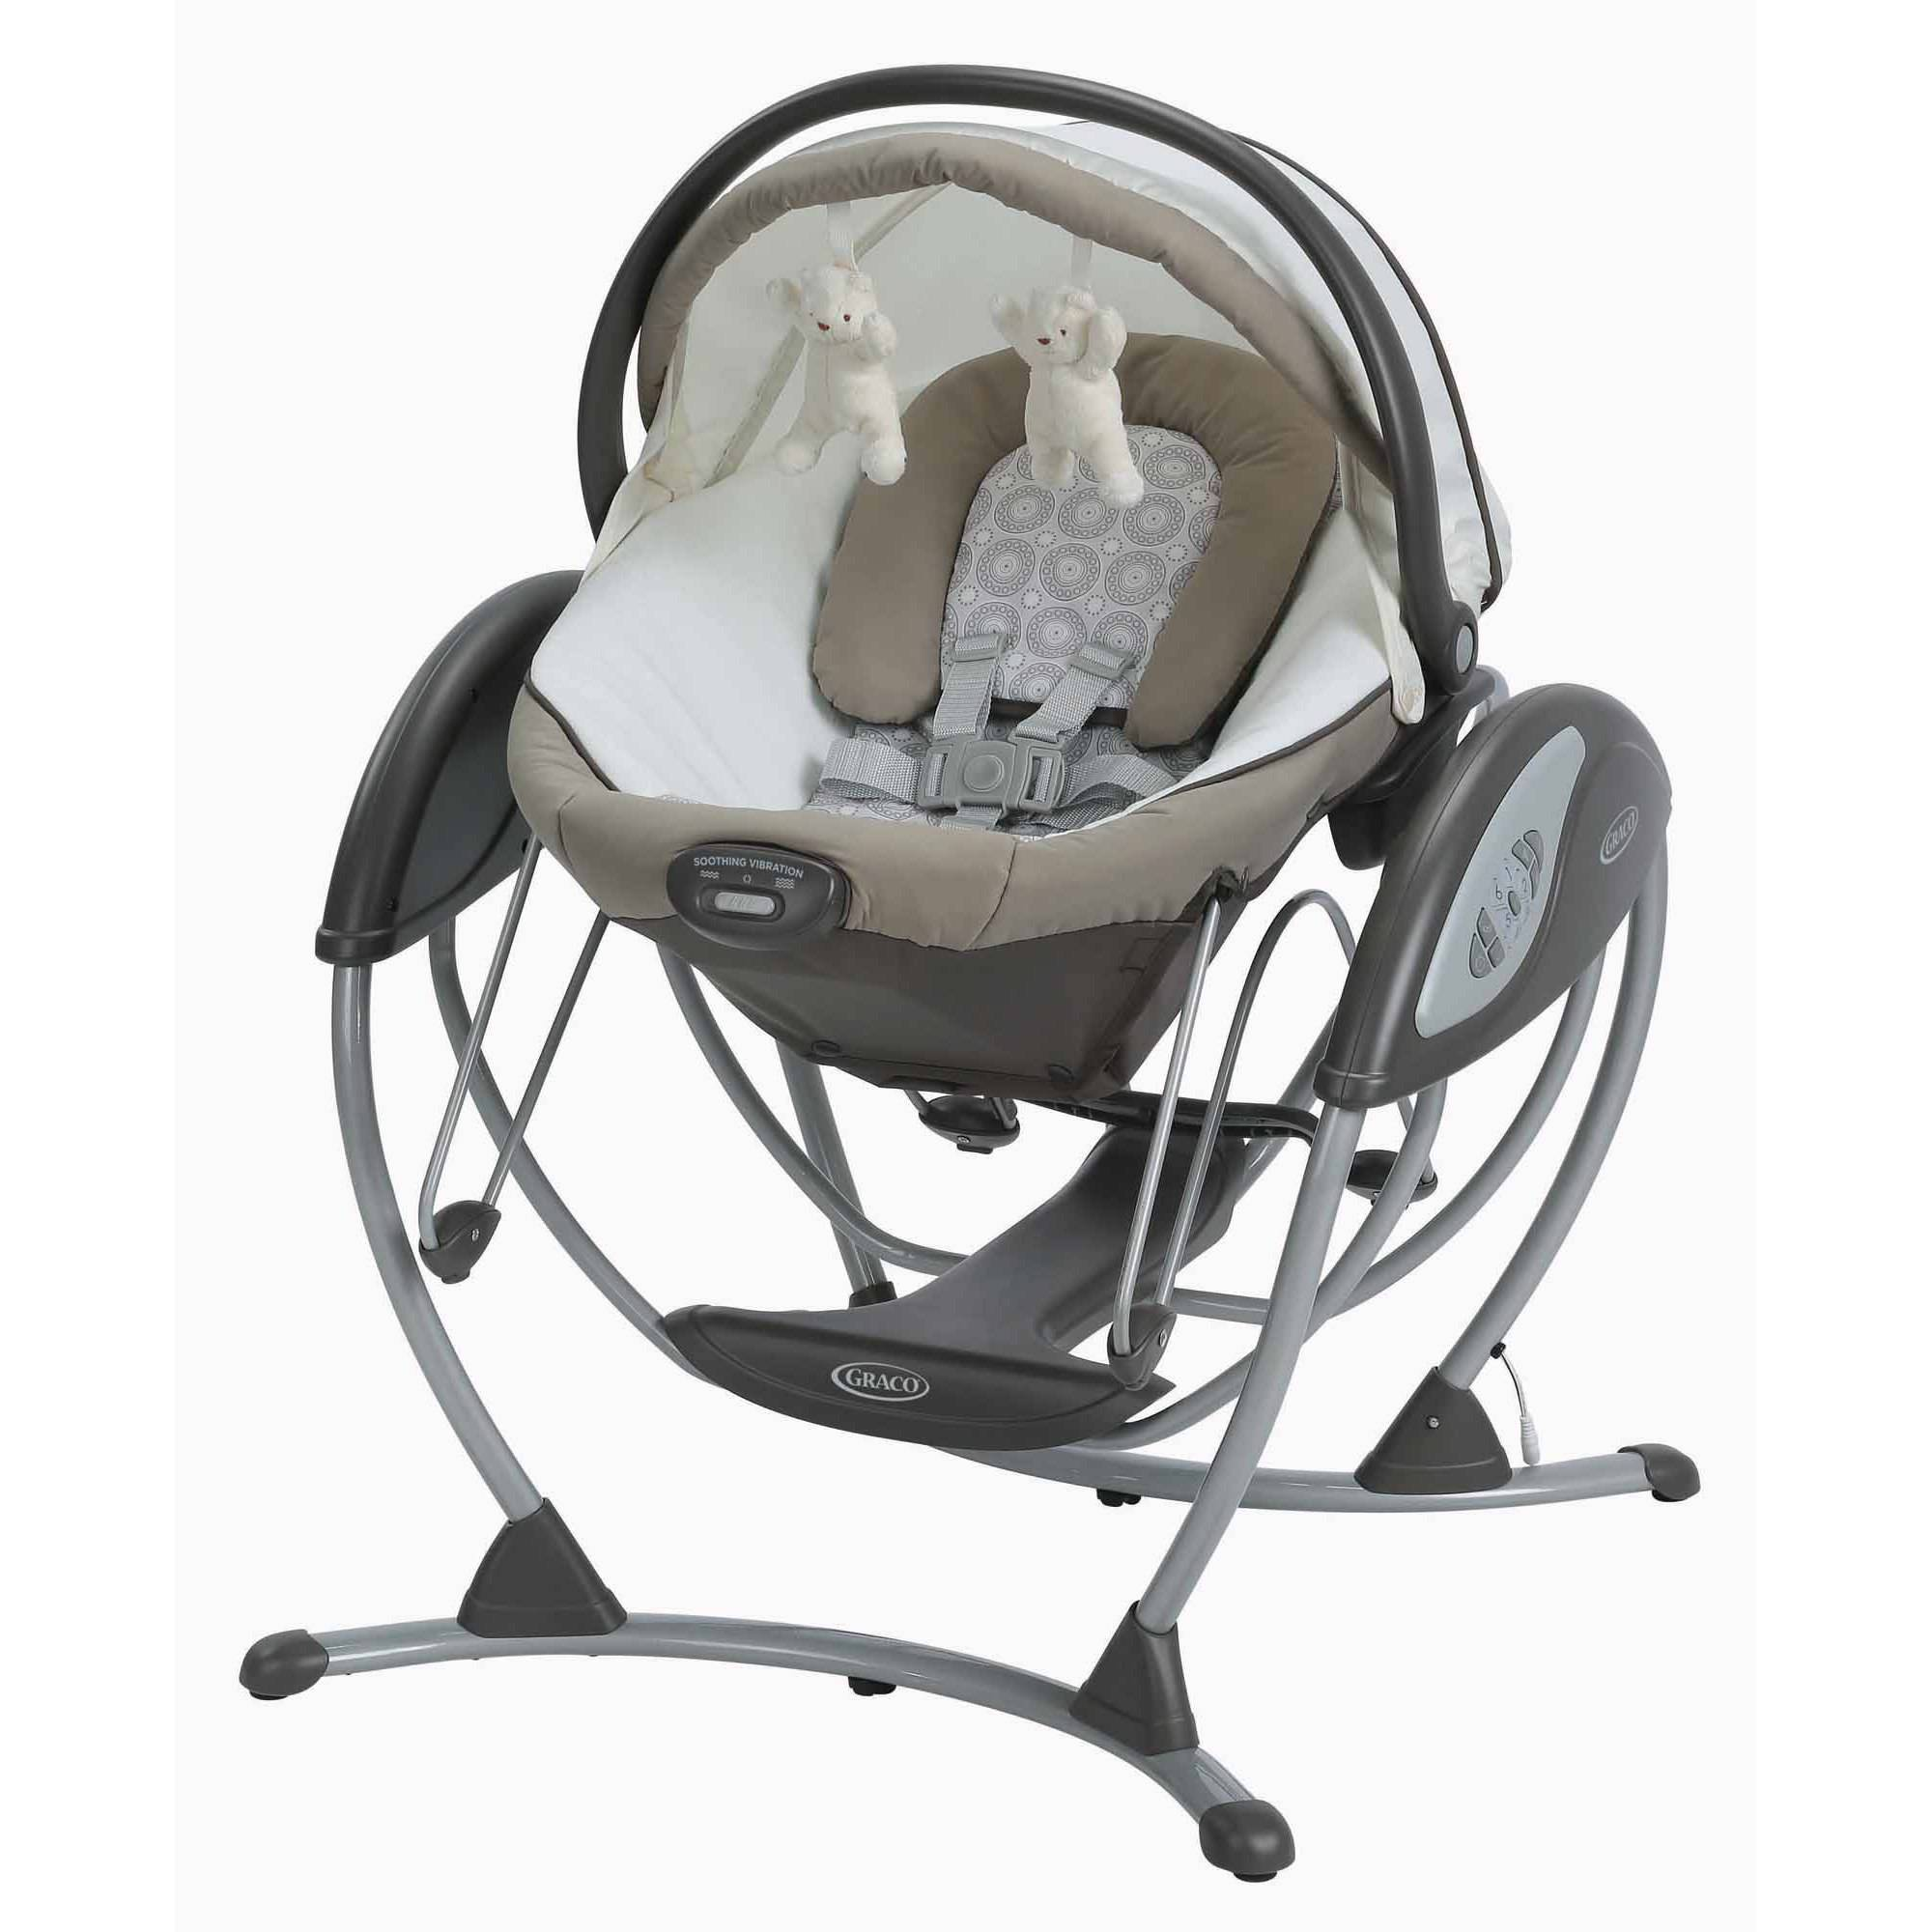 Graco Soothing System Glider Baby Swing, Abbington